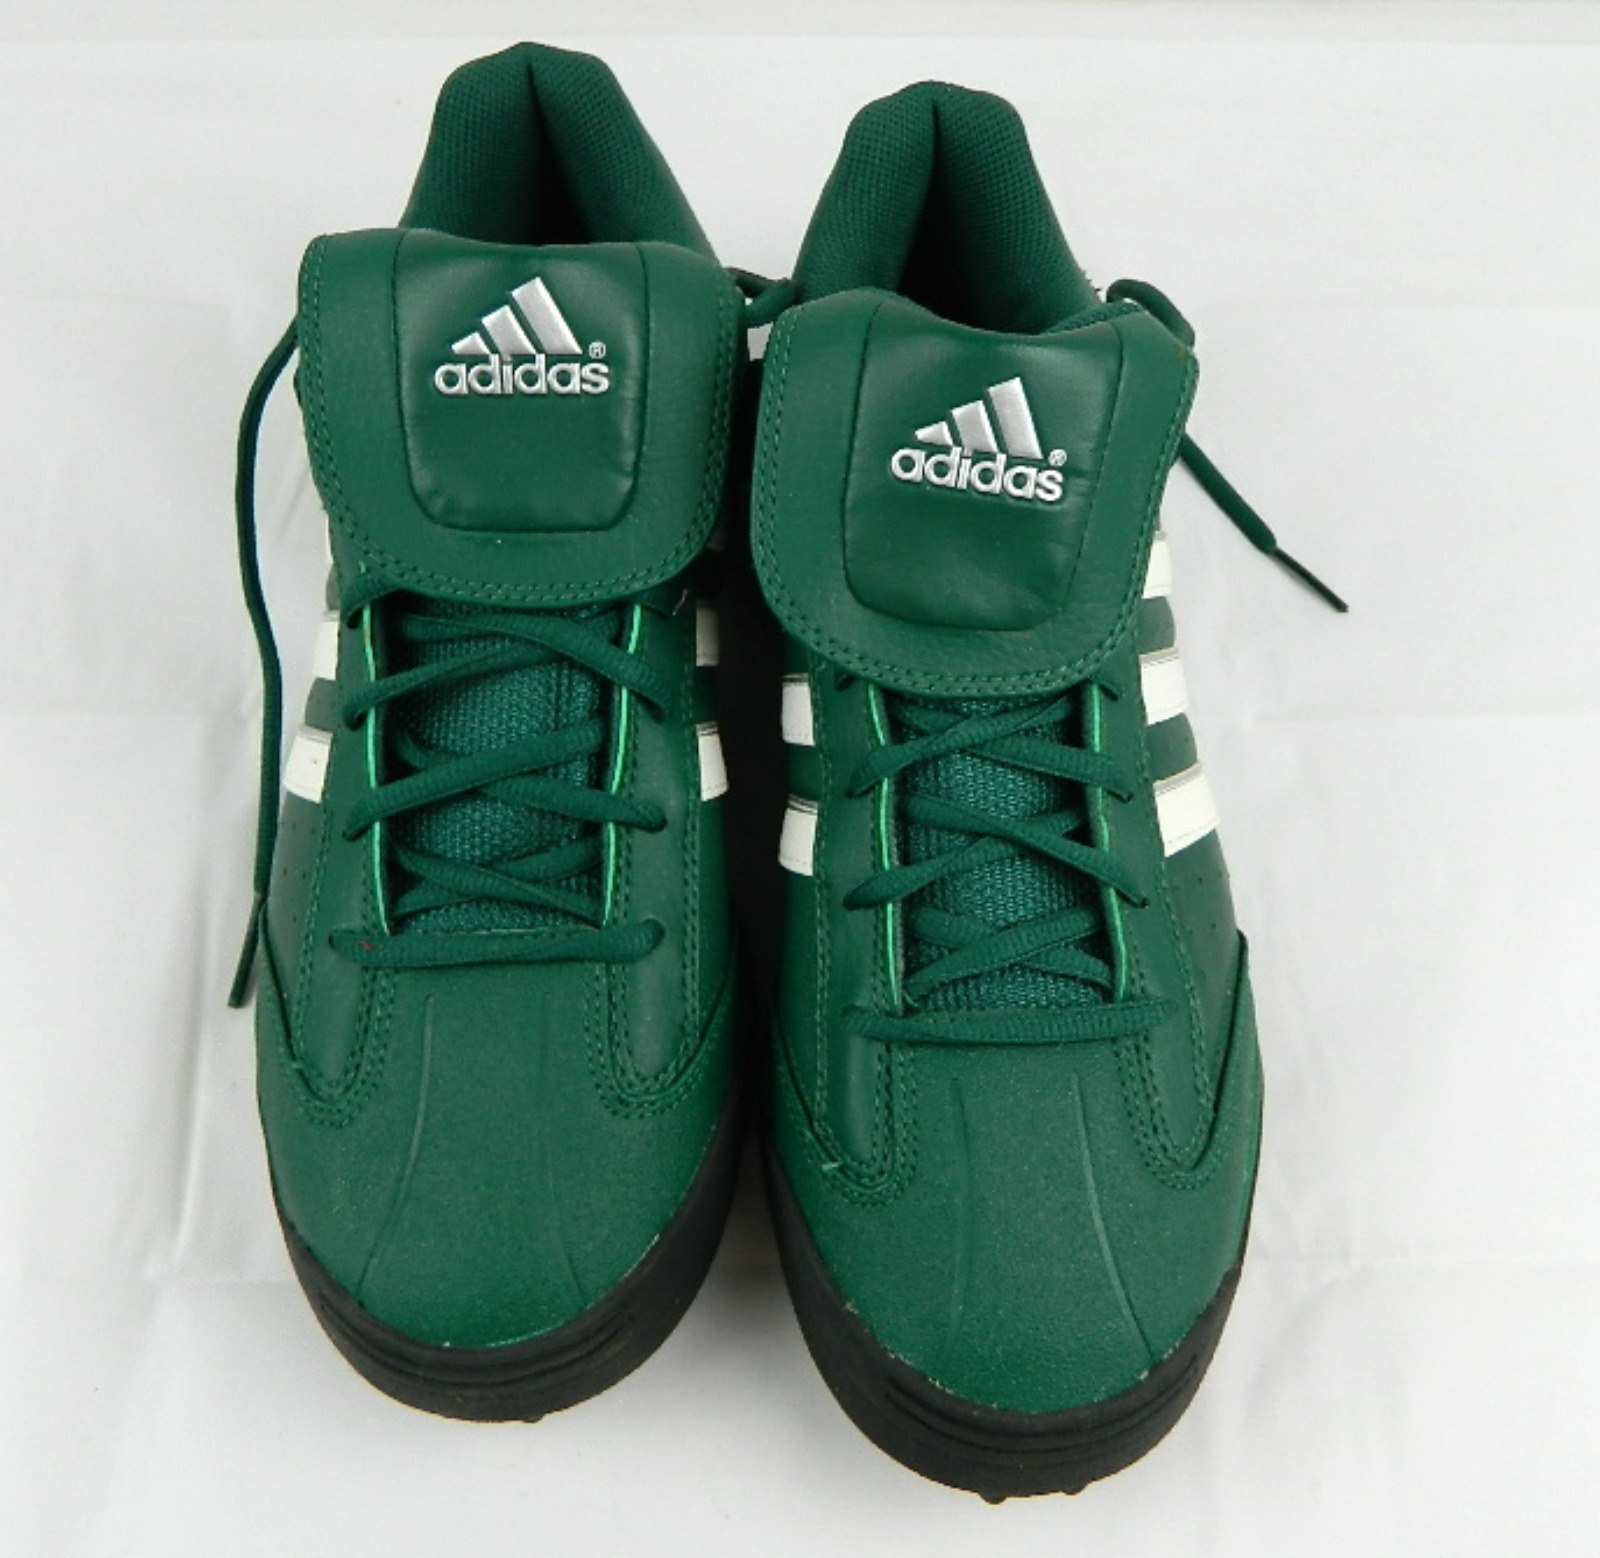 1c657536d Adidas Women s Softball Shoes cleats green and 50 similar items